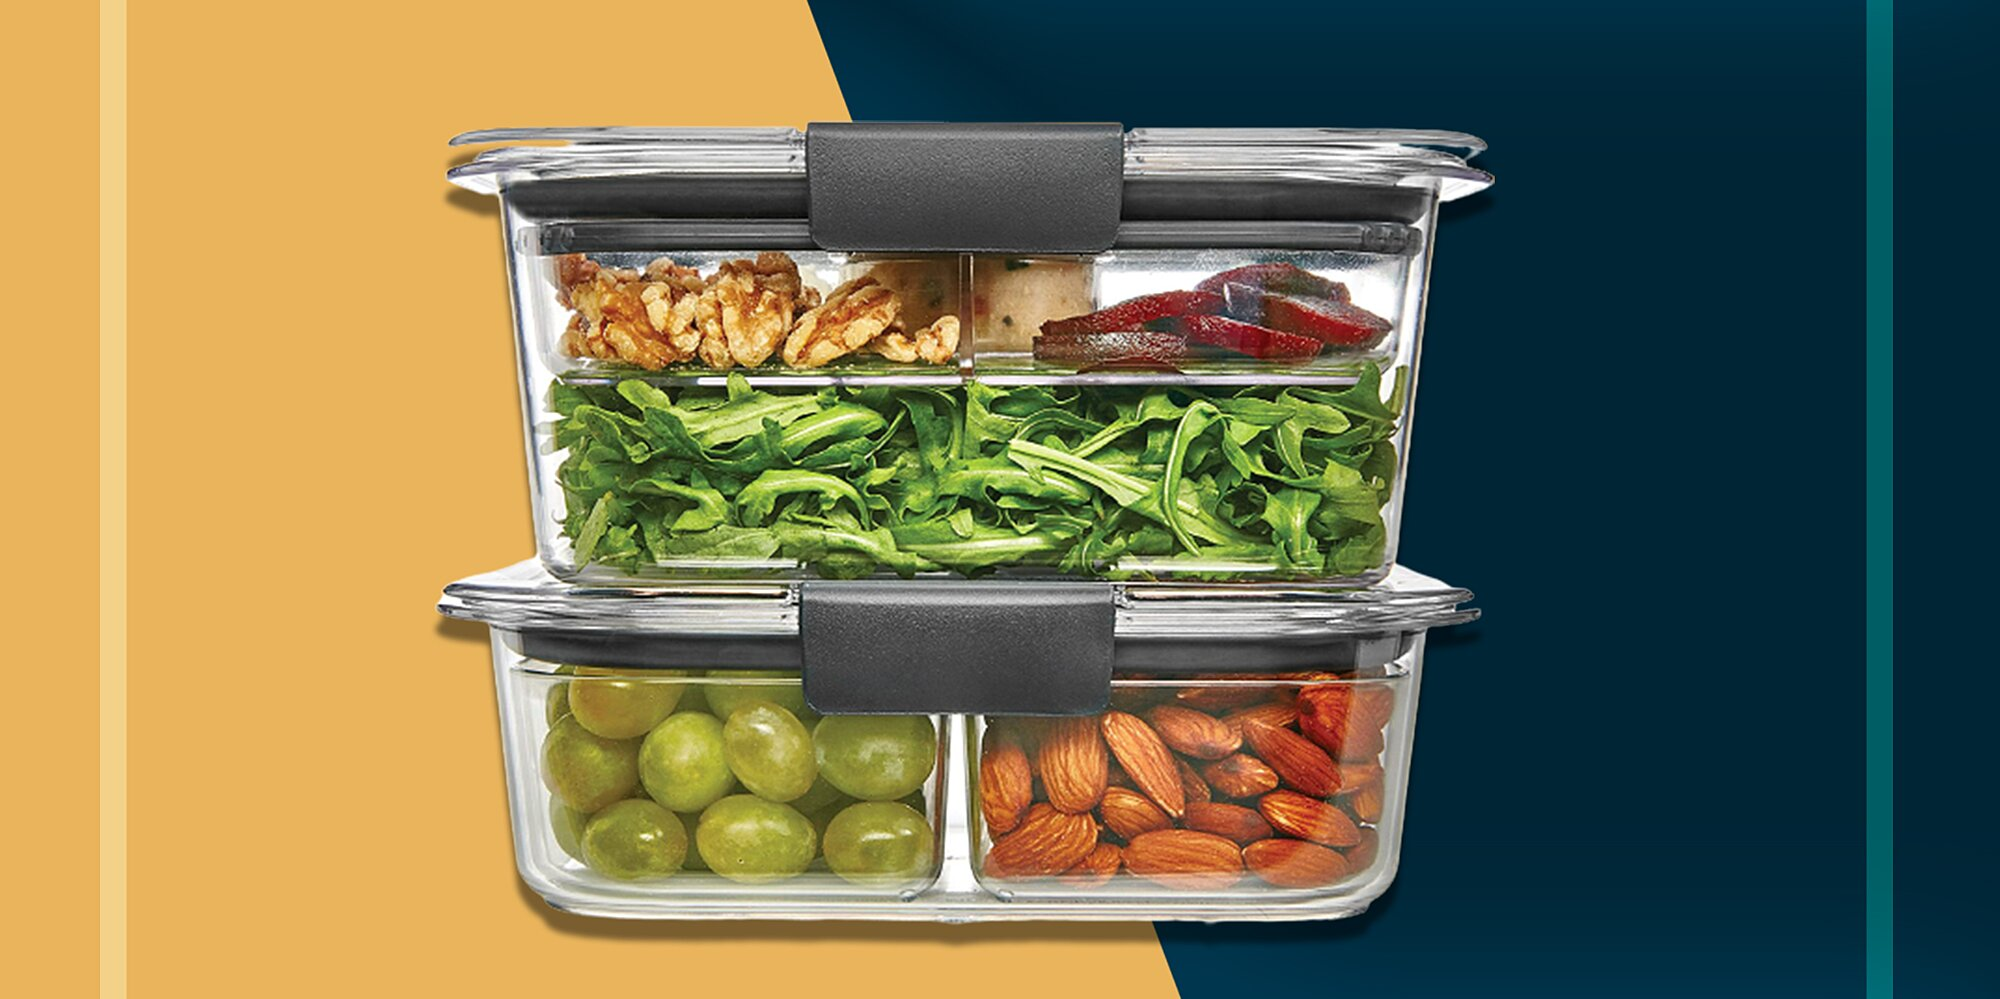 These Rubbermaid Storage Containers Keep Food Fresh All Week Long, and They're 30% Off at Amazon